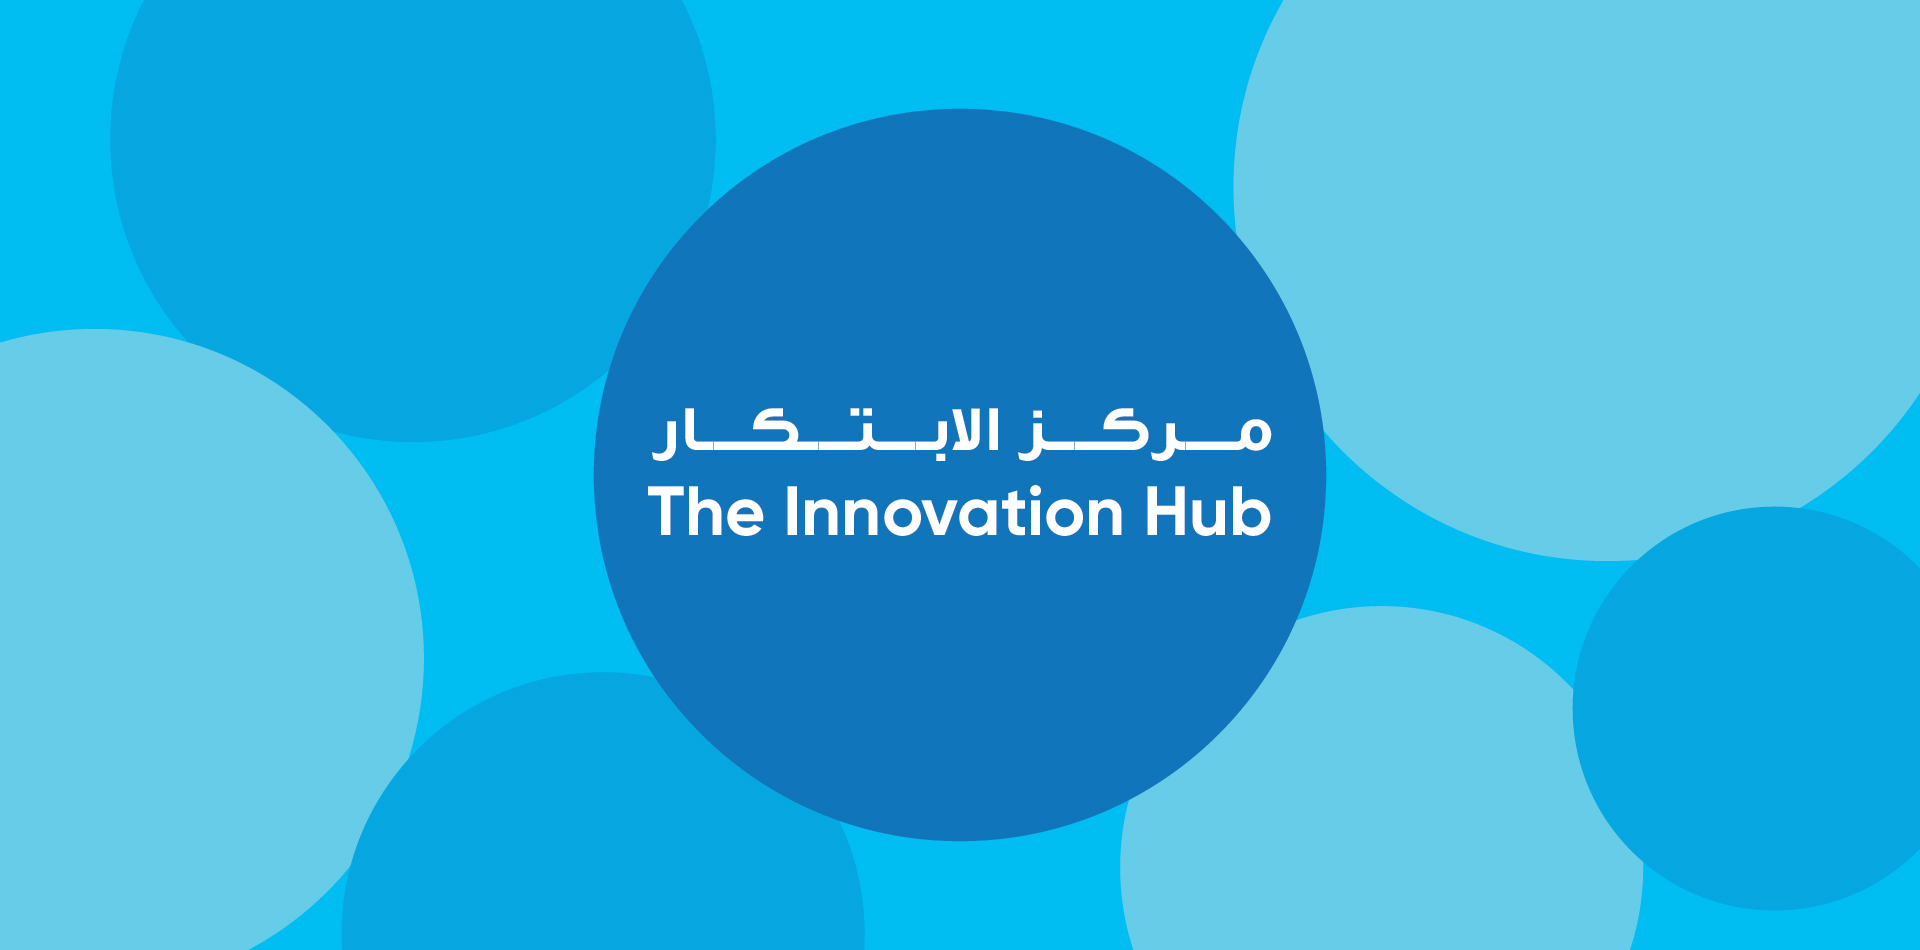 OAB_INNOVATION_HUB_HOMEPG